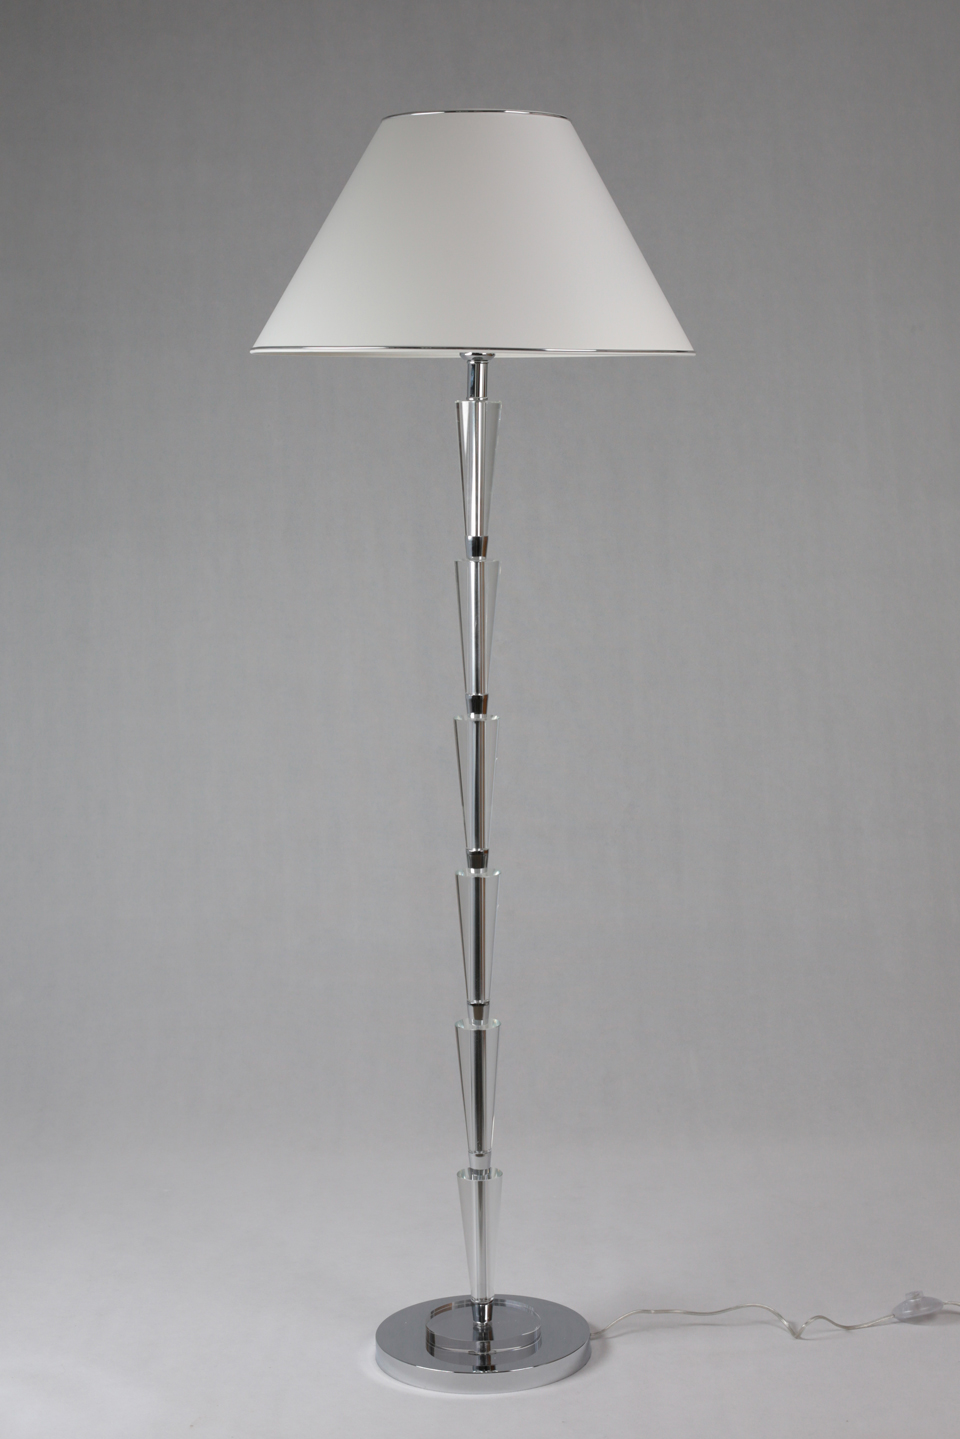 Floor Lamp In Glass White Lampshade And Chrome Edging Round Base